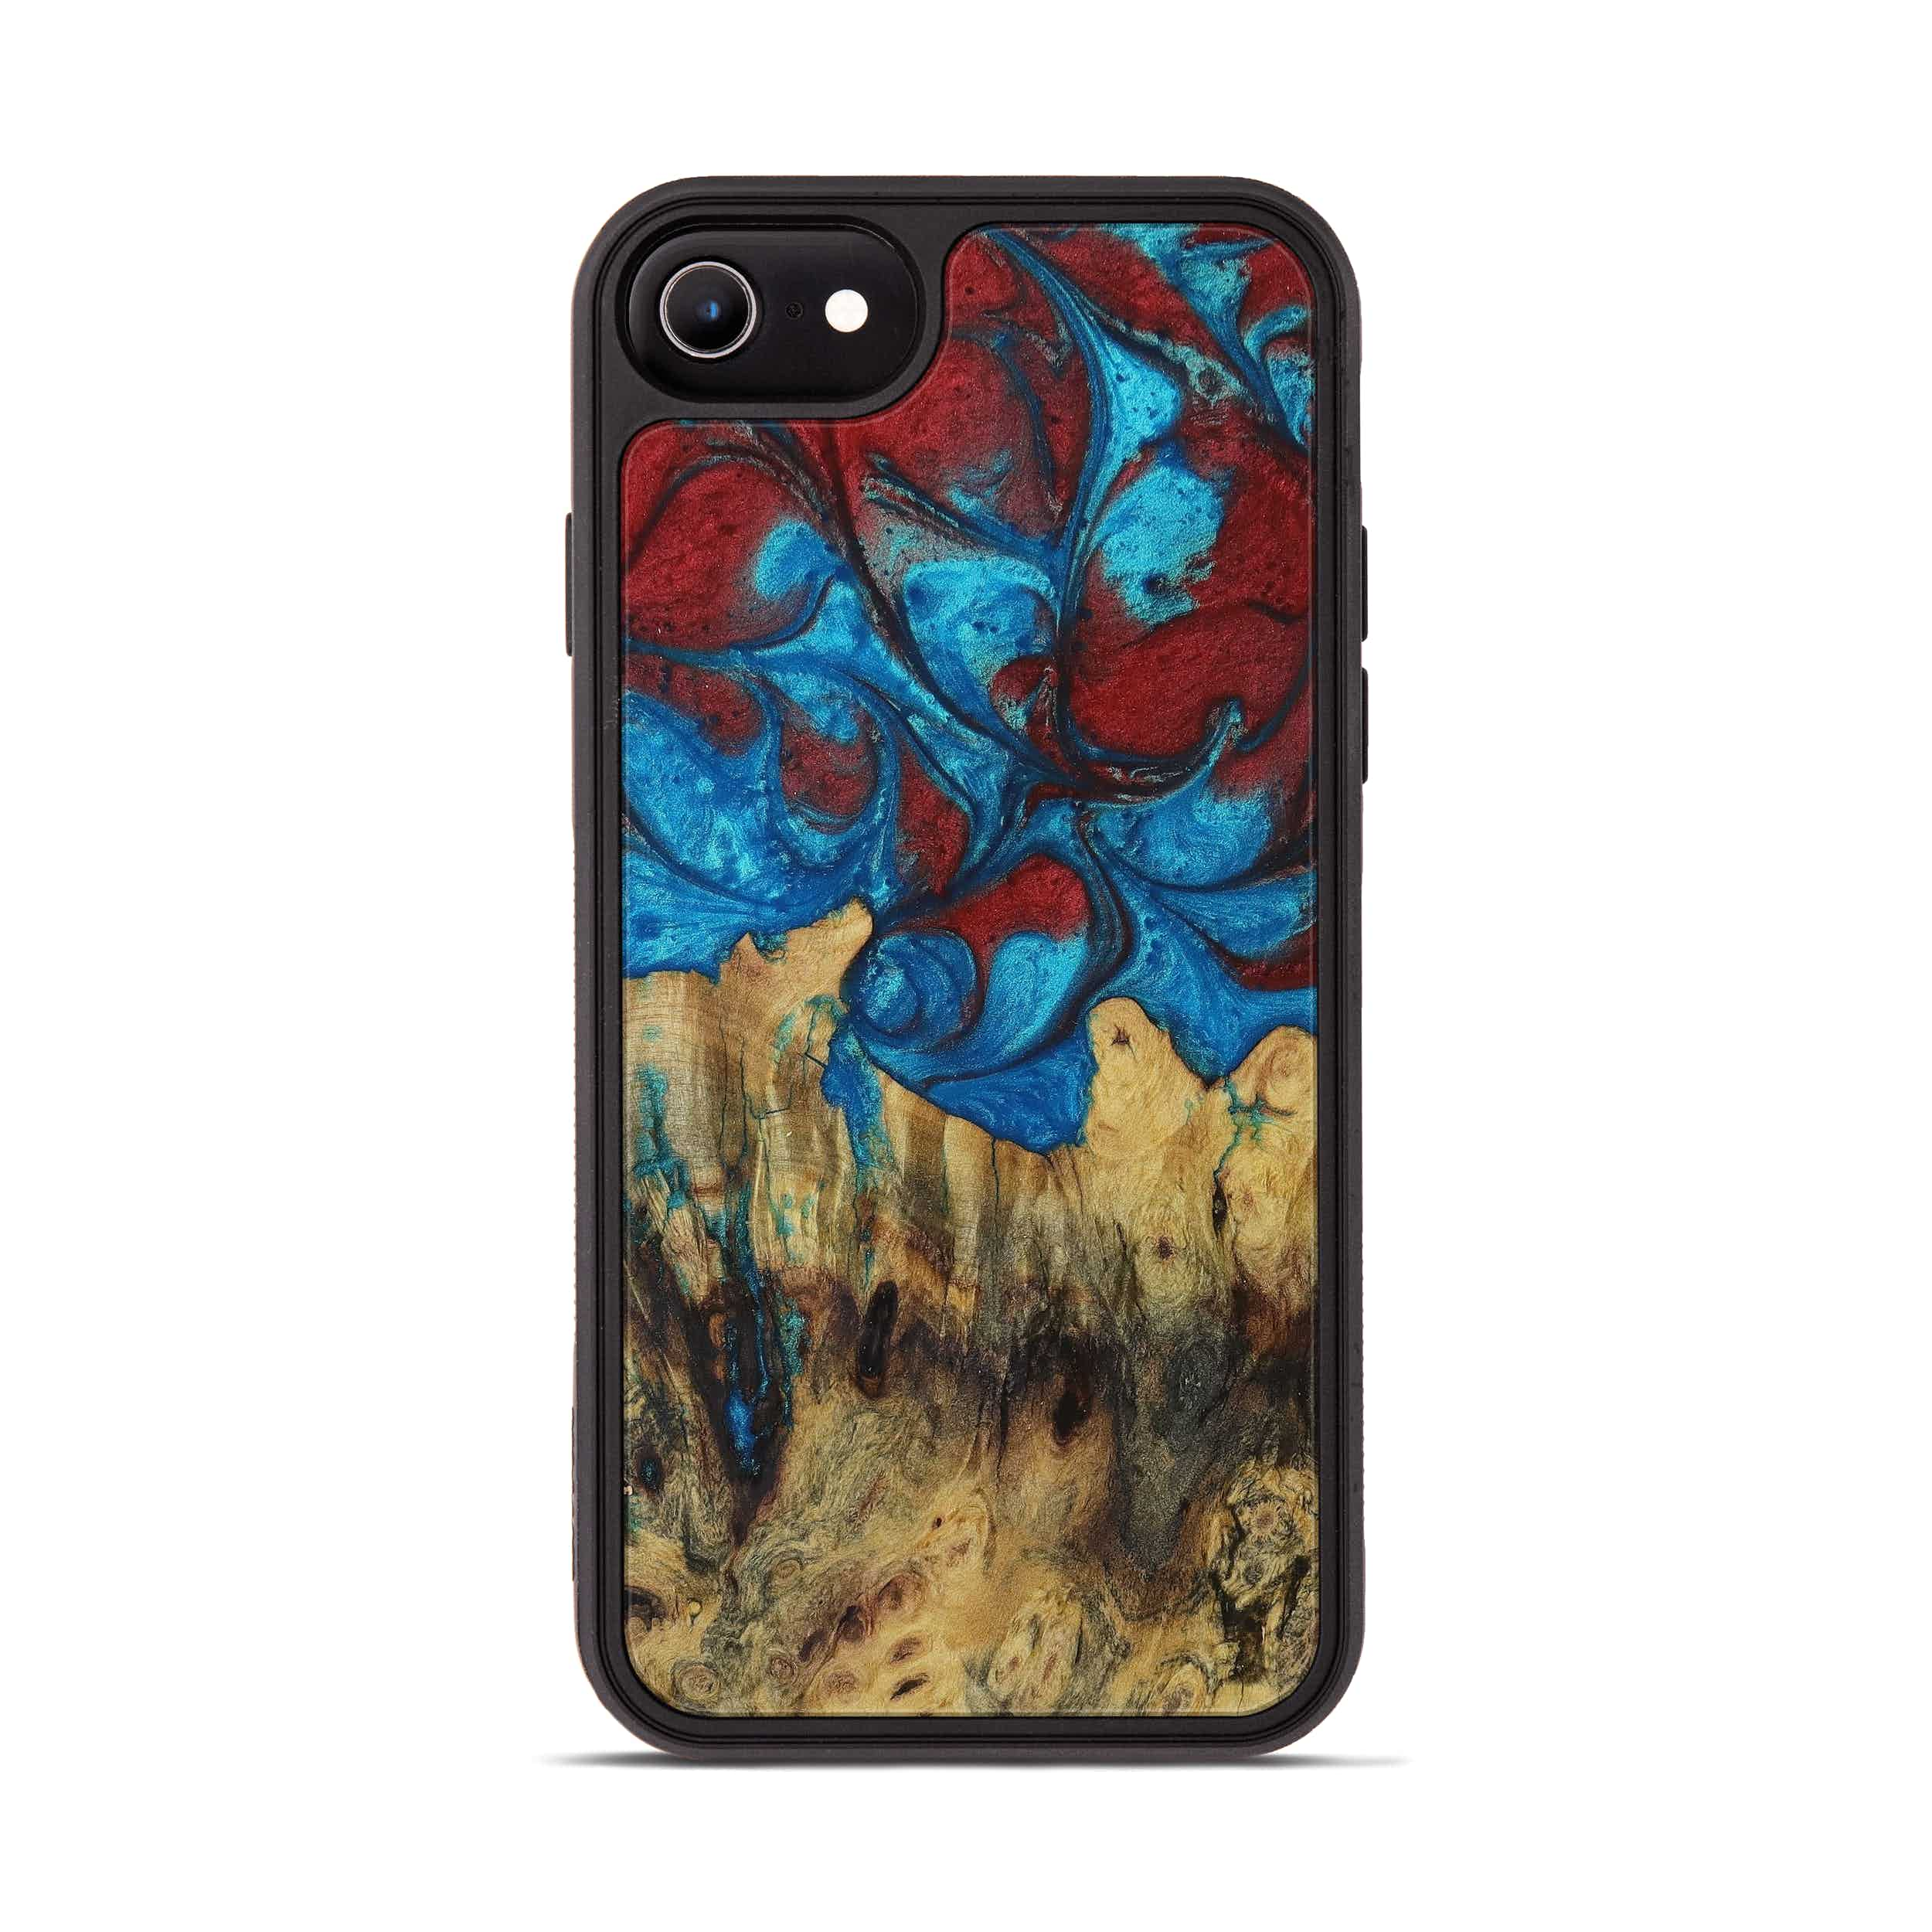 iPhone 6s Wood+Resin Phone Case - Dniren (Blue & Red, 395010)